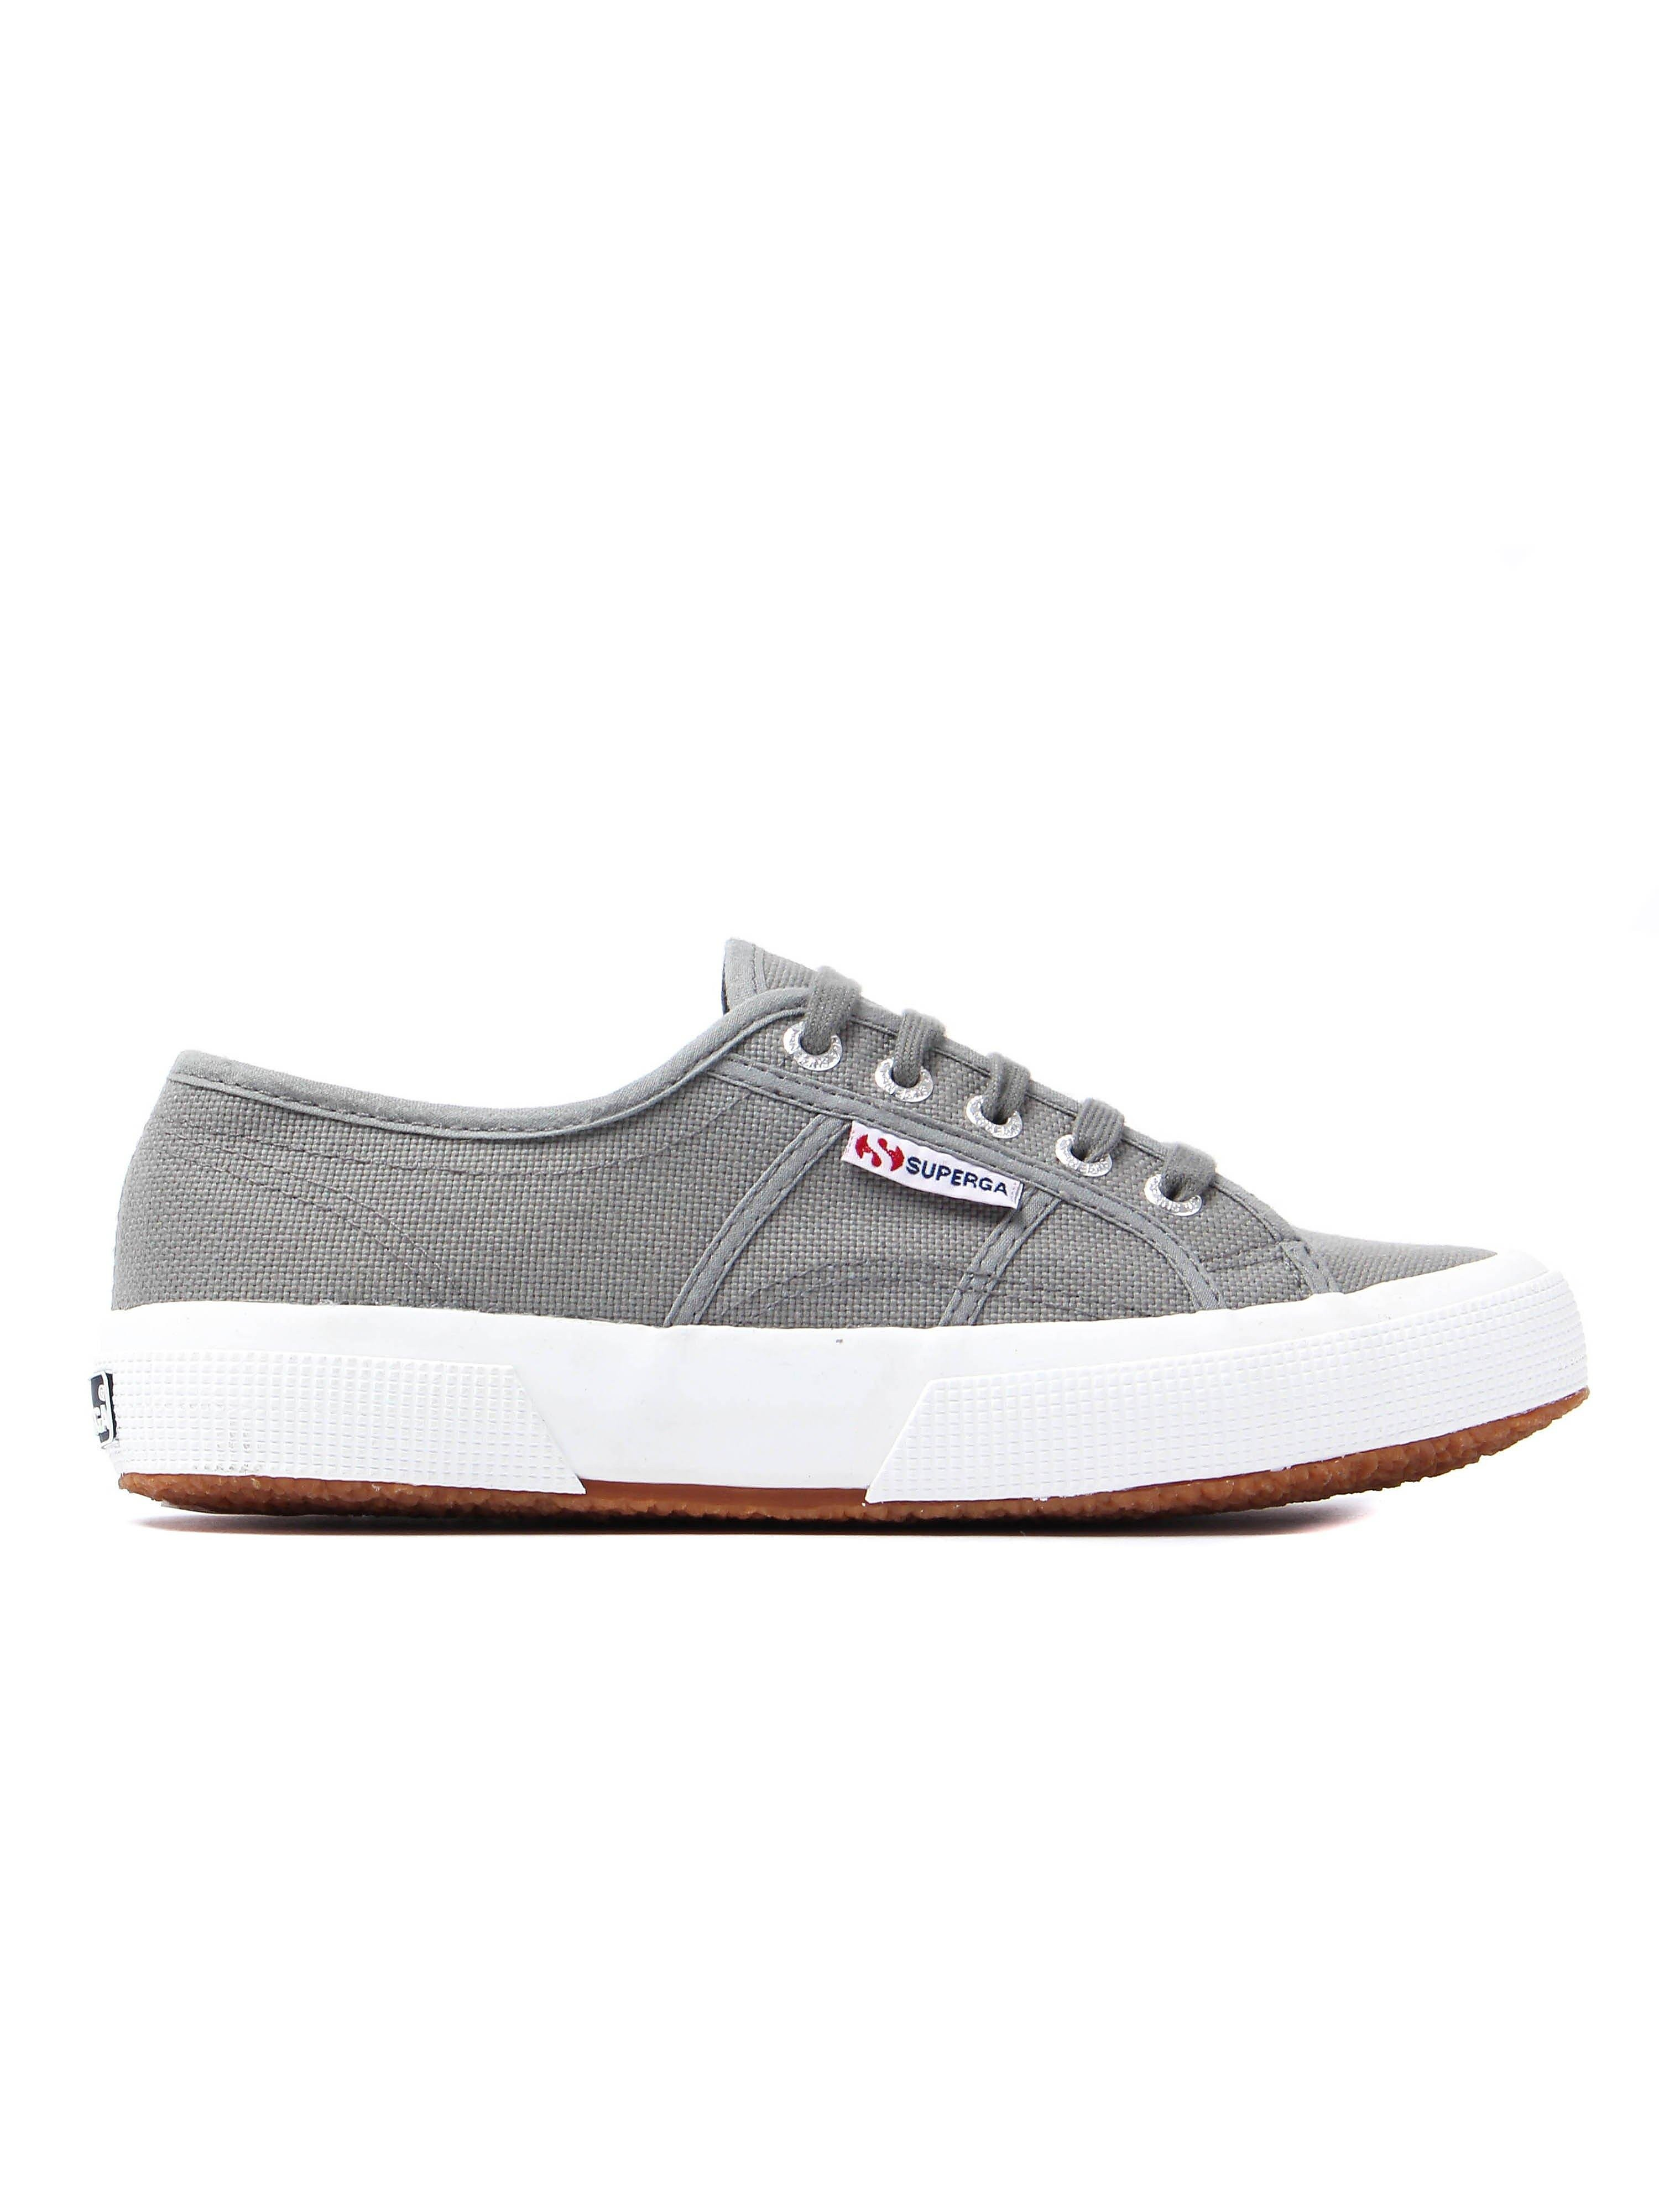 Superga Women's 2750 Cotu Canvas Trainers - Grey